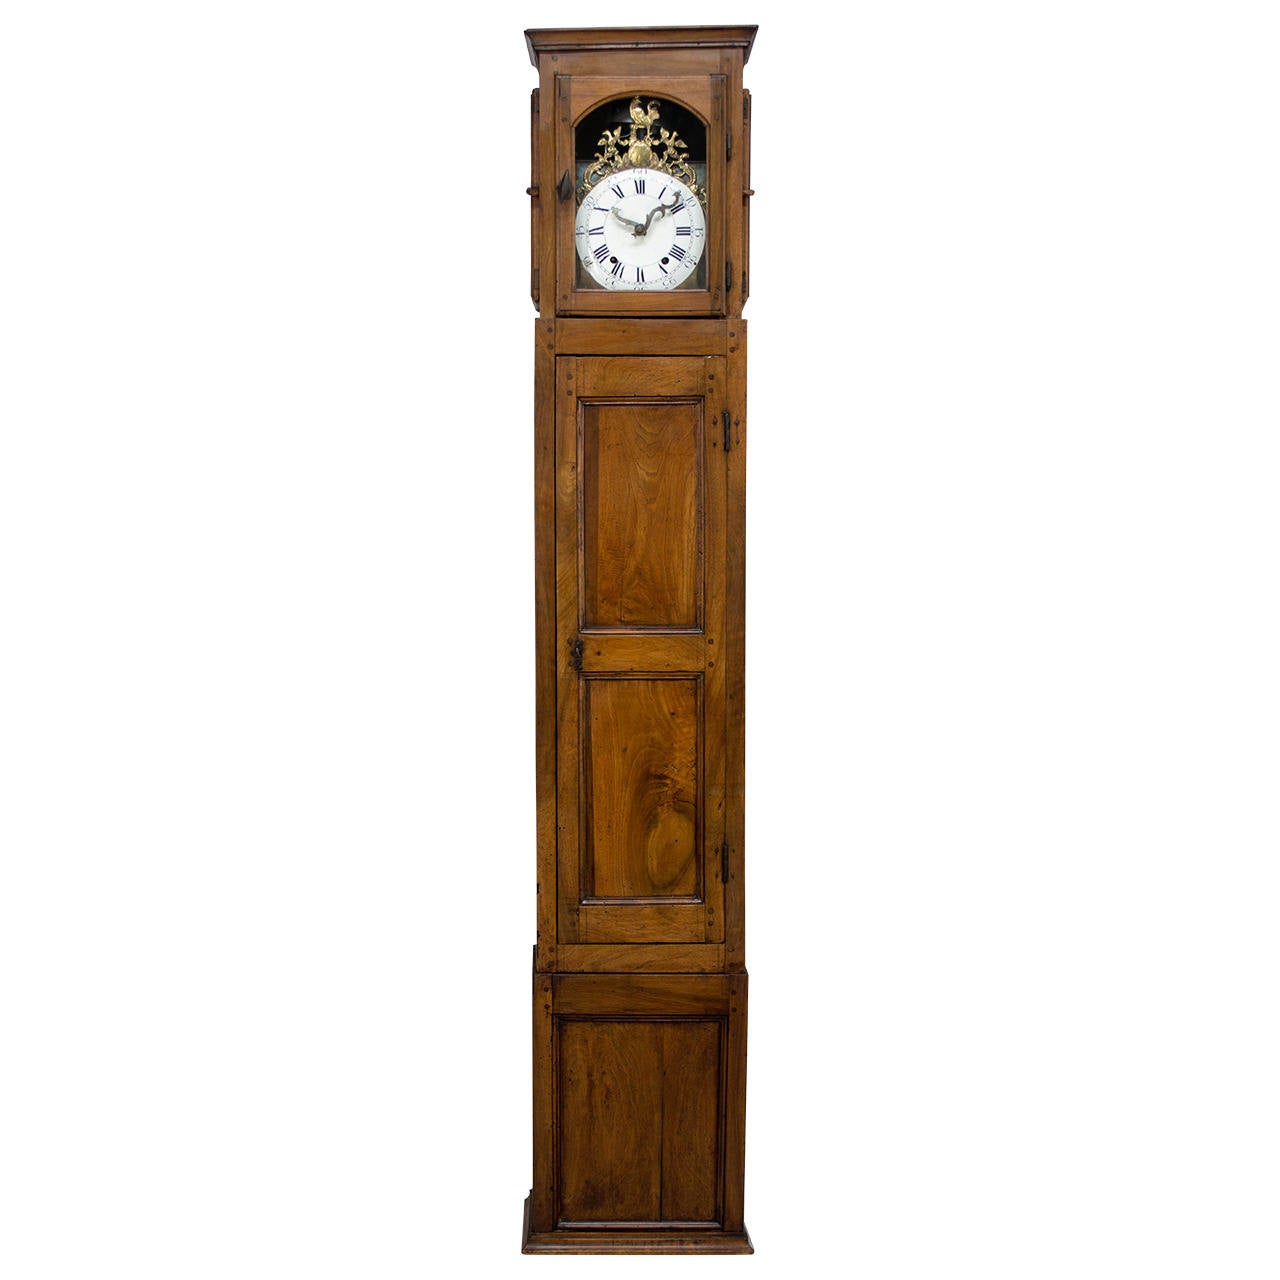 18th century french horloge de parquet or tall case clock for sale at 1stdibs. Black Bedroom Furniture Sets. Home Design Ideas